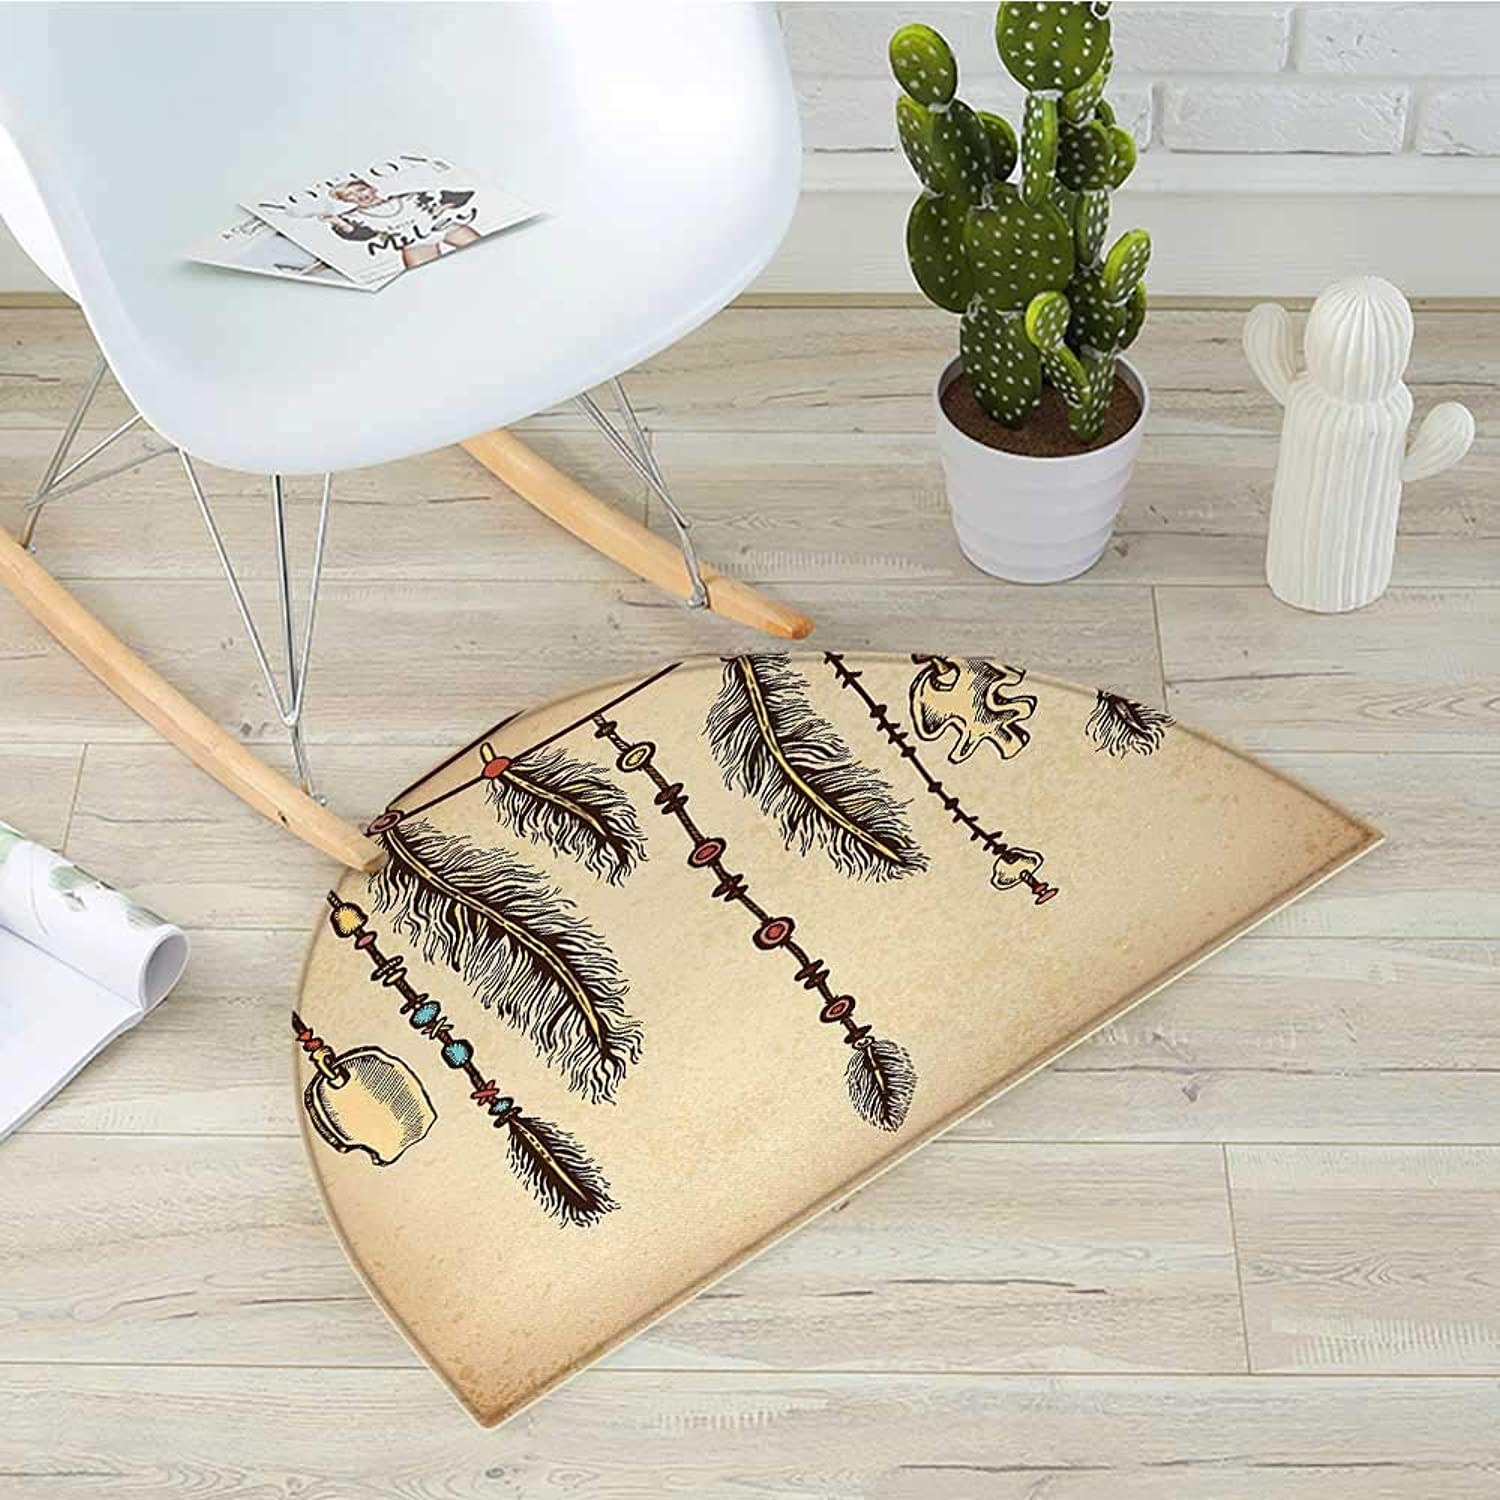 Tribal Half Round Door mats Bohemian Ethnic Hair Accessories with Bird Feathers Beads on String Sketch Digital Print Bathroom Mat H 31.5  xD 47.2  Brown